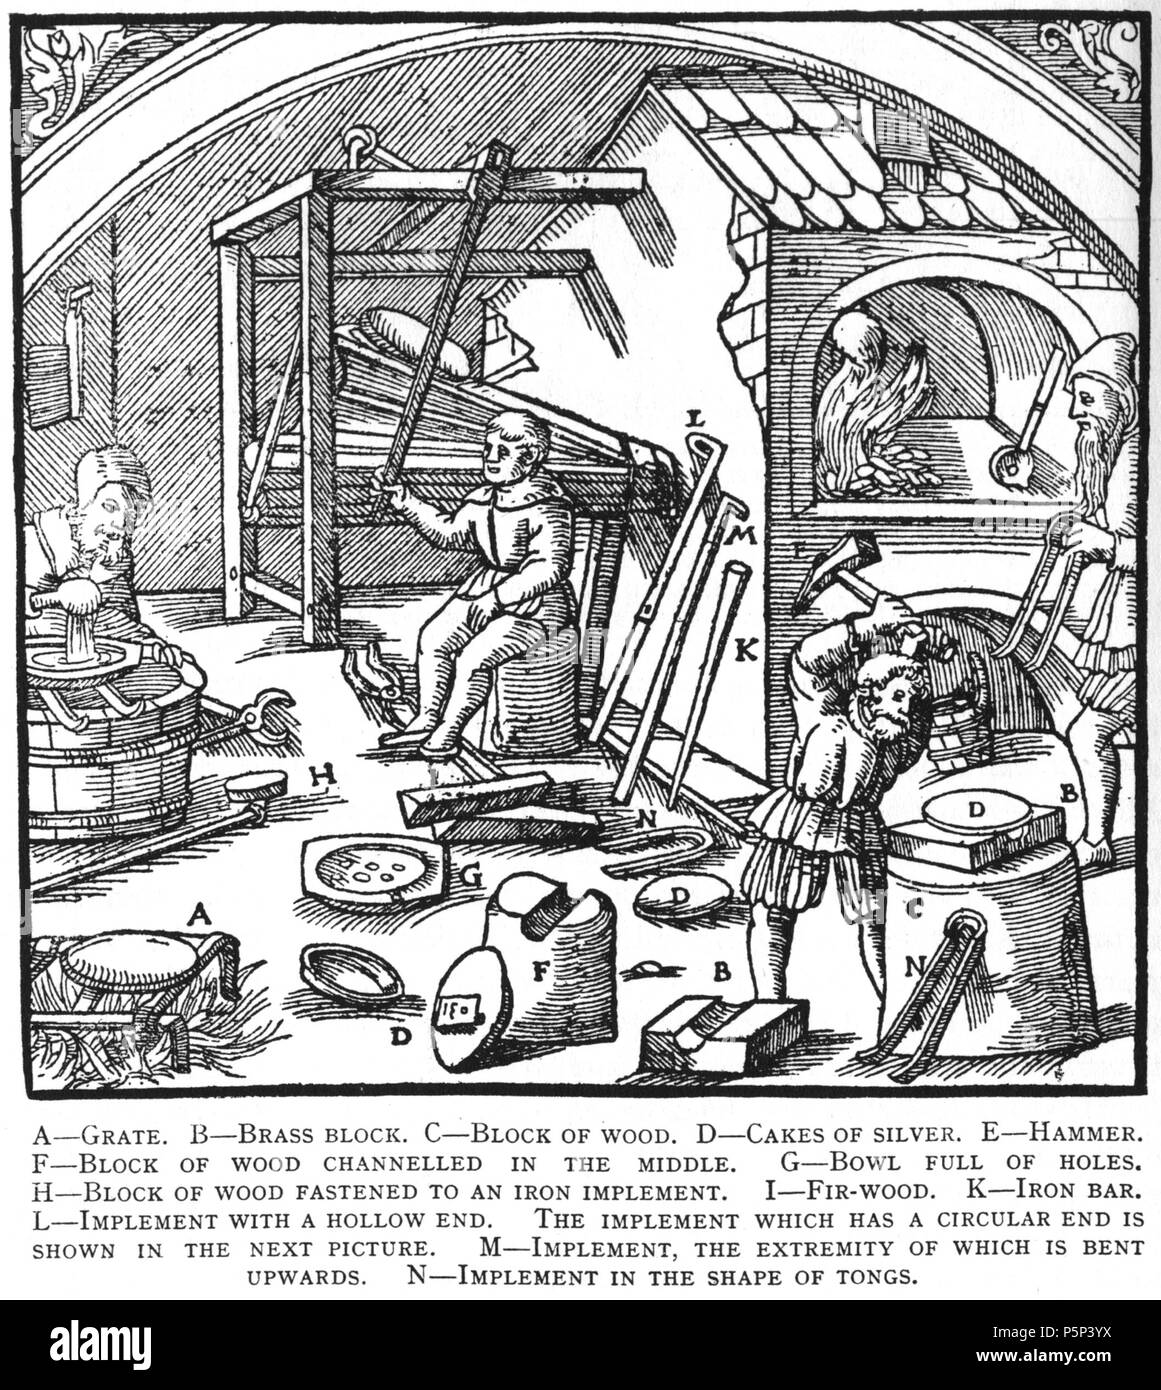 N/A. Woodcut illustration from De re metallica by Georgius Agricola. This is a 300dpi scan from the 1950 Dover edition of the 1913 Hoover translation of the 1556 reference. The Dover edition has slightly smaller size prints than the Hoover (which is a rare book). The woodcuts were recreated for the 1913 printing. Filenames (except for the title page) indicate the chapter (2, 3, 5, etc.) followed by the sequential number of the illustration. 2 May 2005, 06:04:30. TCO (talk) 222 Book10-15 - Stock Image